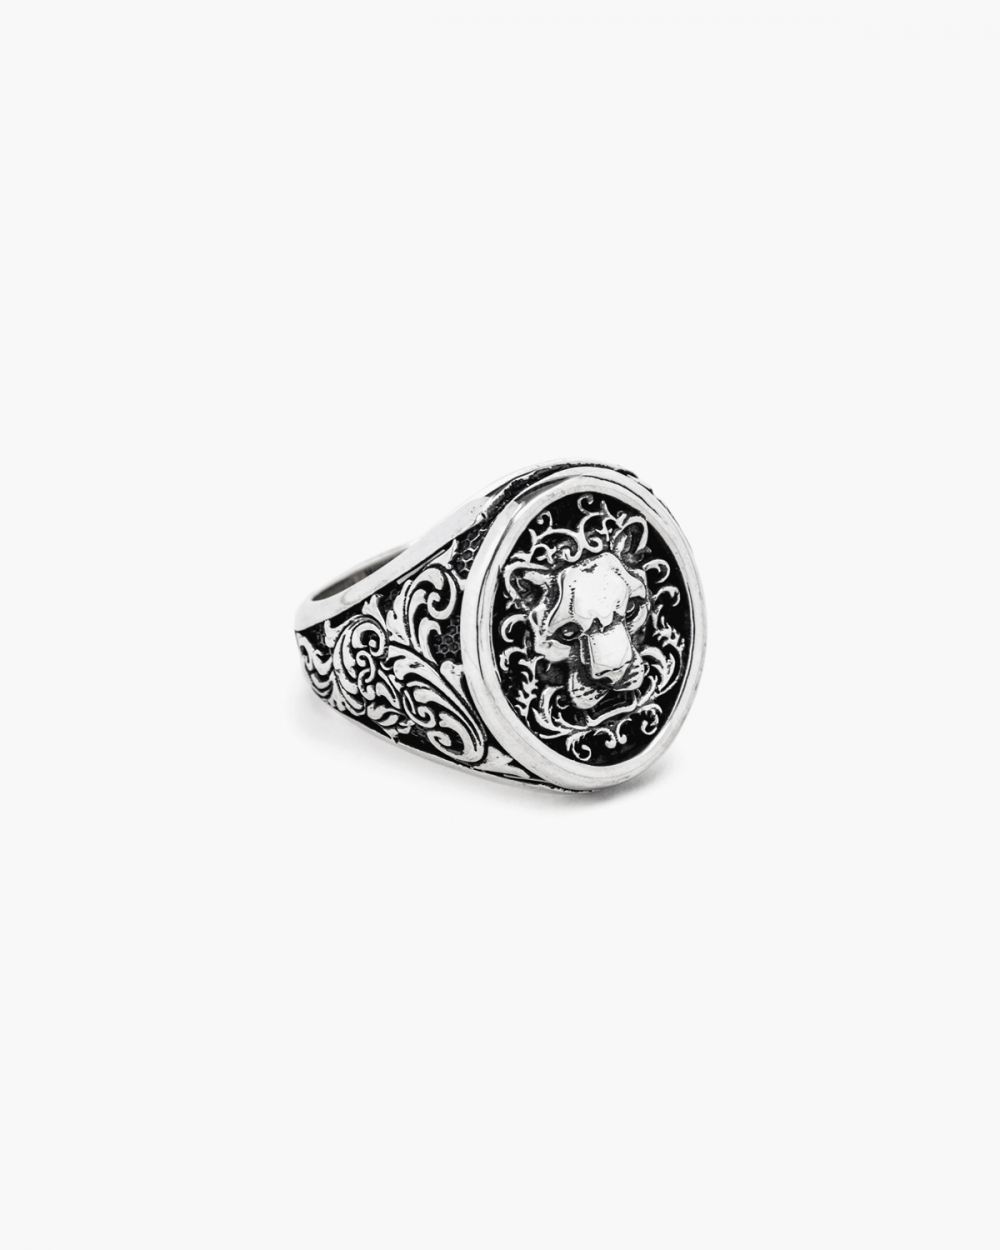 Archive Sale HERALDIC PANTHER SIGNET RING NOVE25